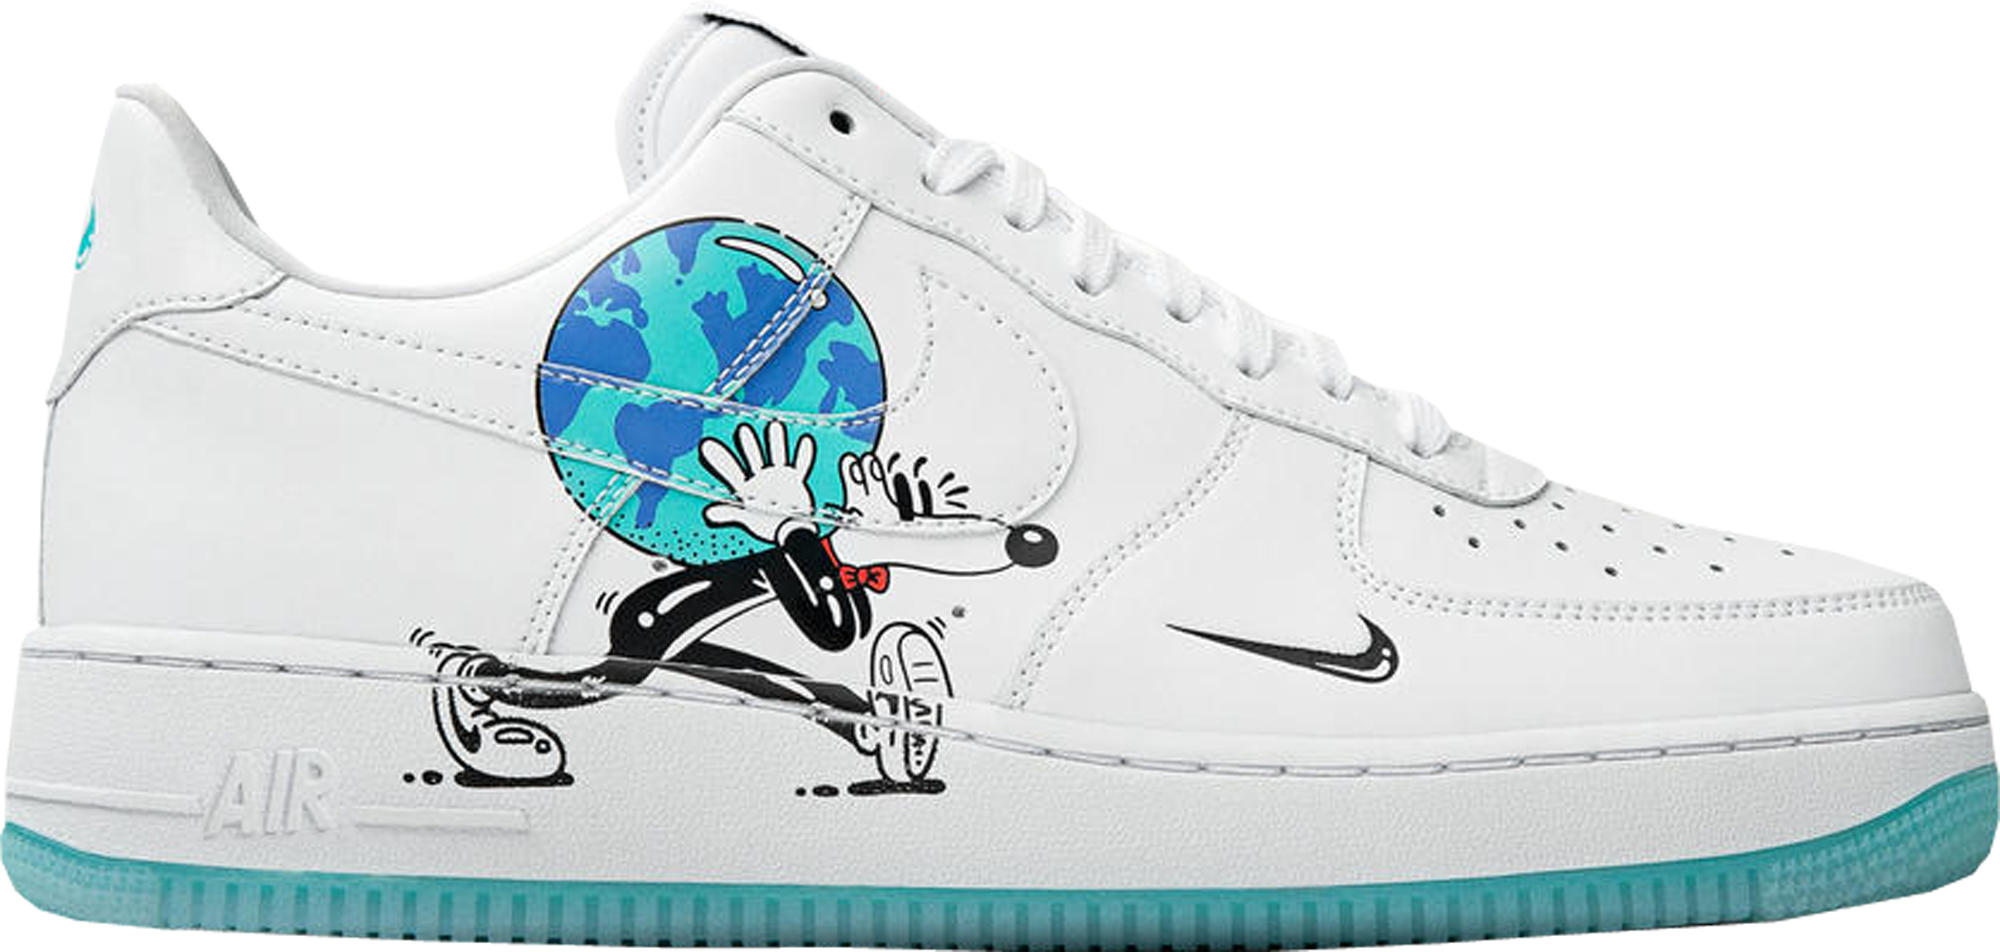 Air Force 1 Flyleather Steve Harrington Earth Day (2019)